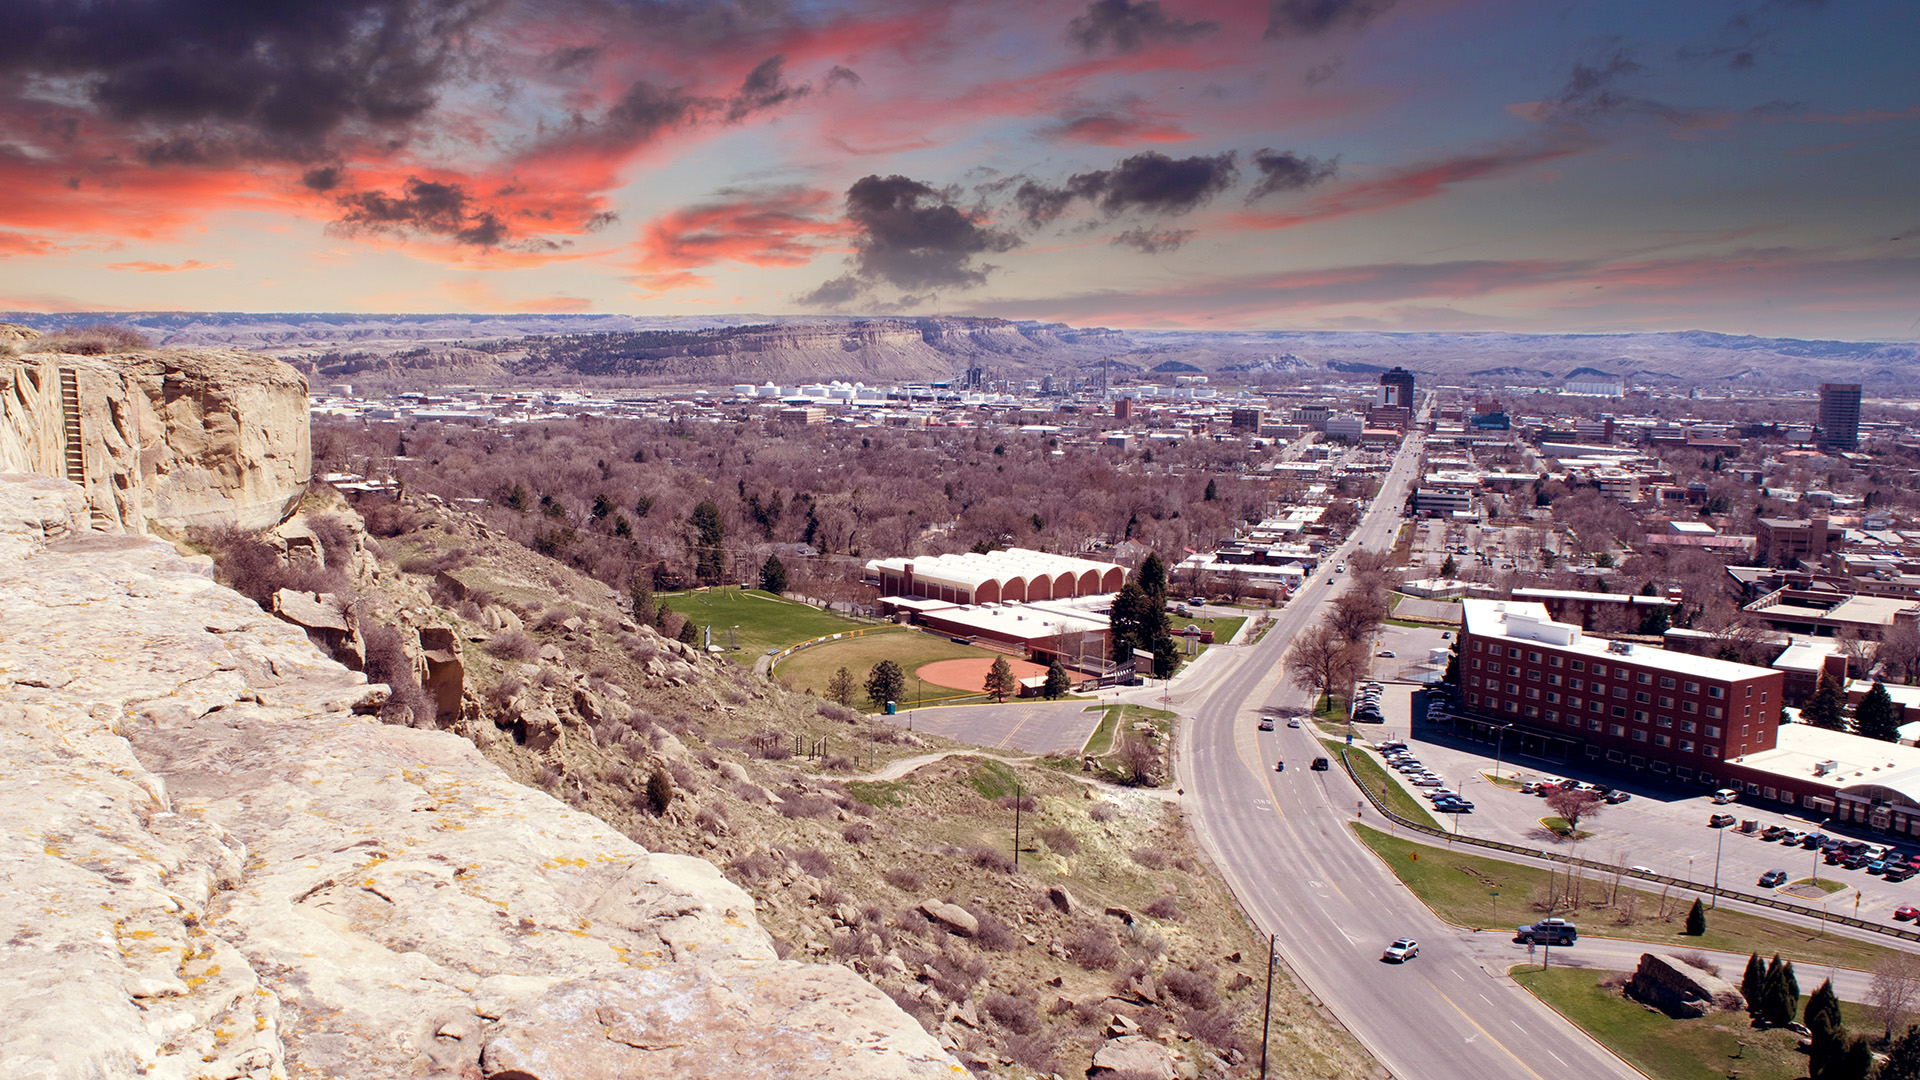 Billings view, with rimrock in the foreground